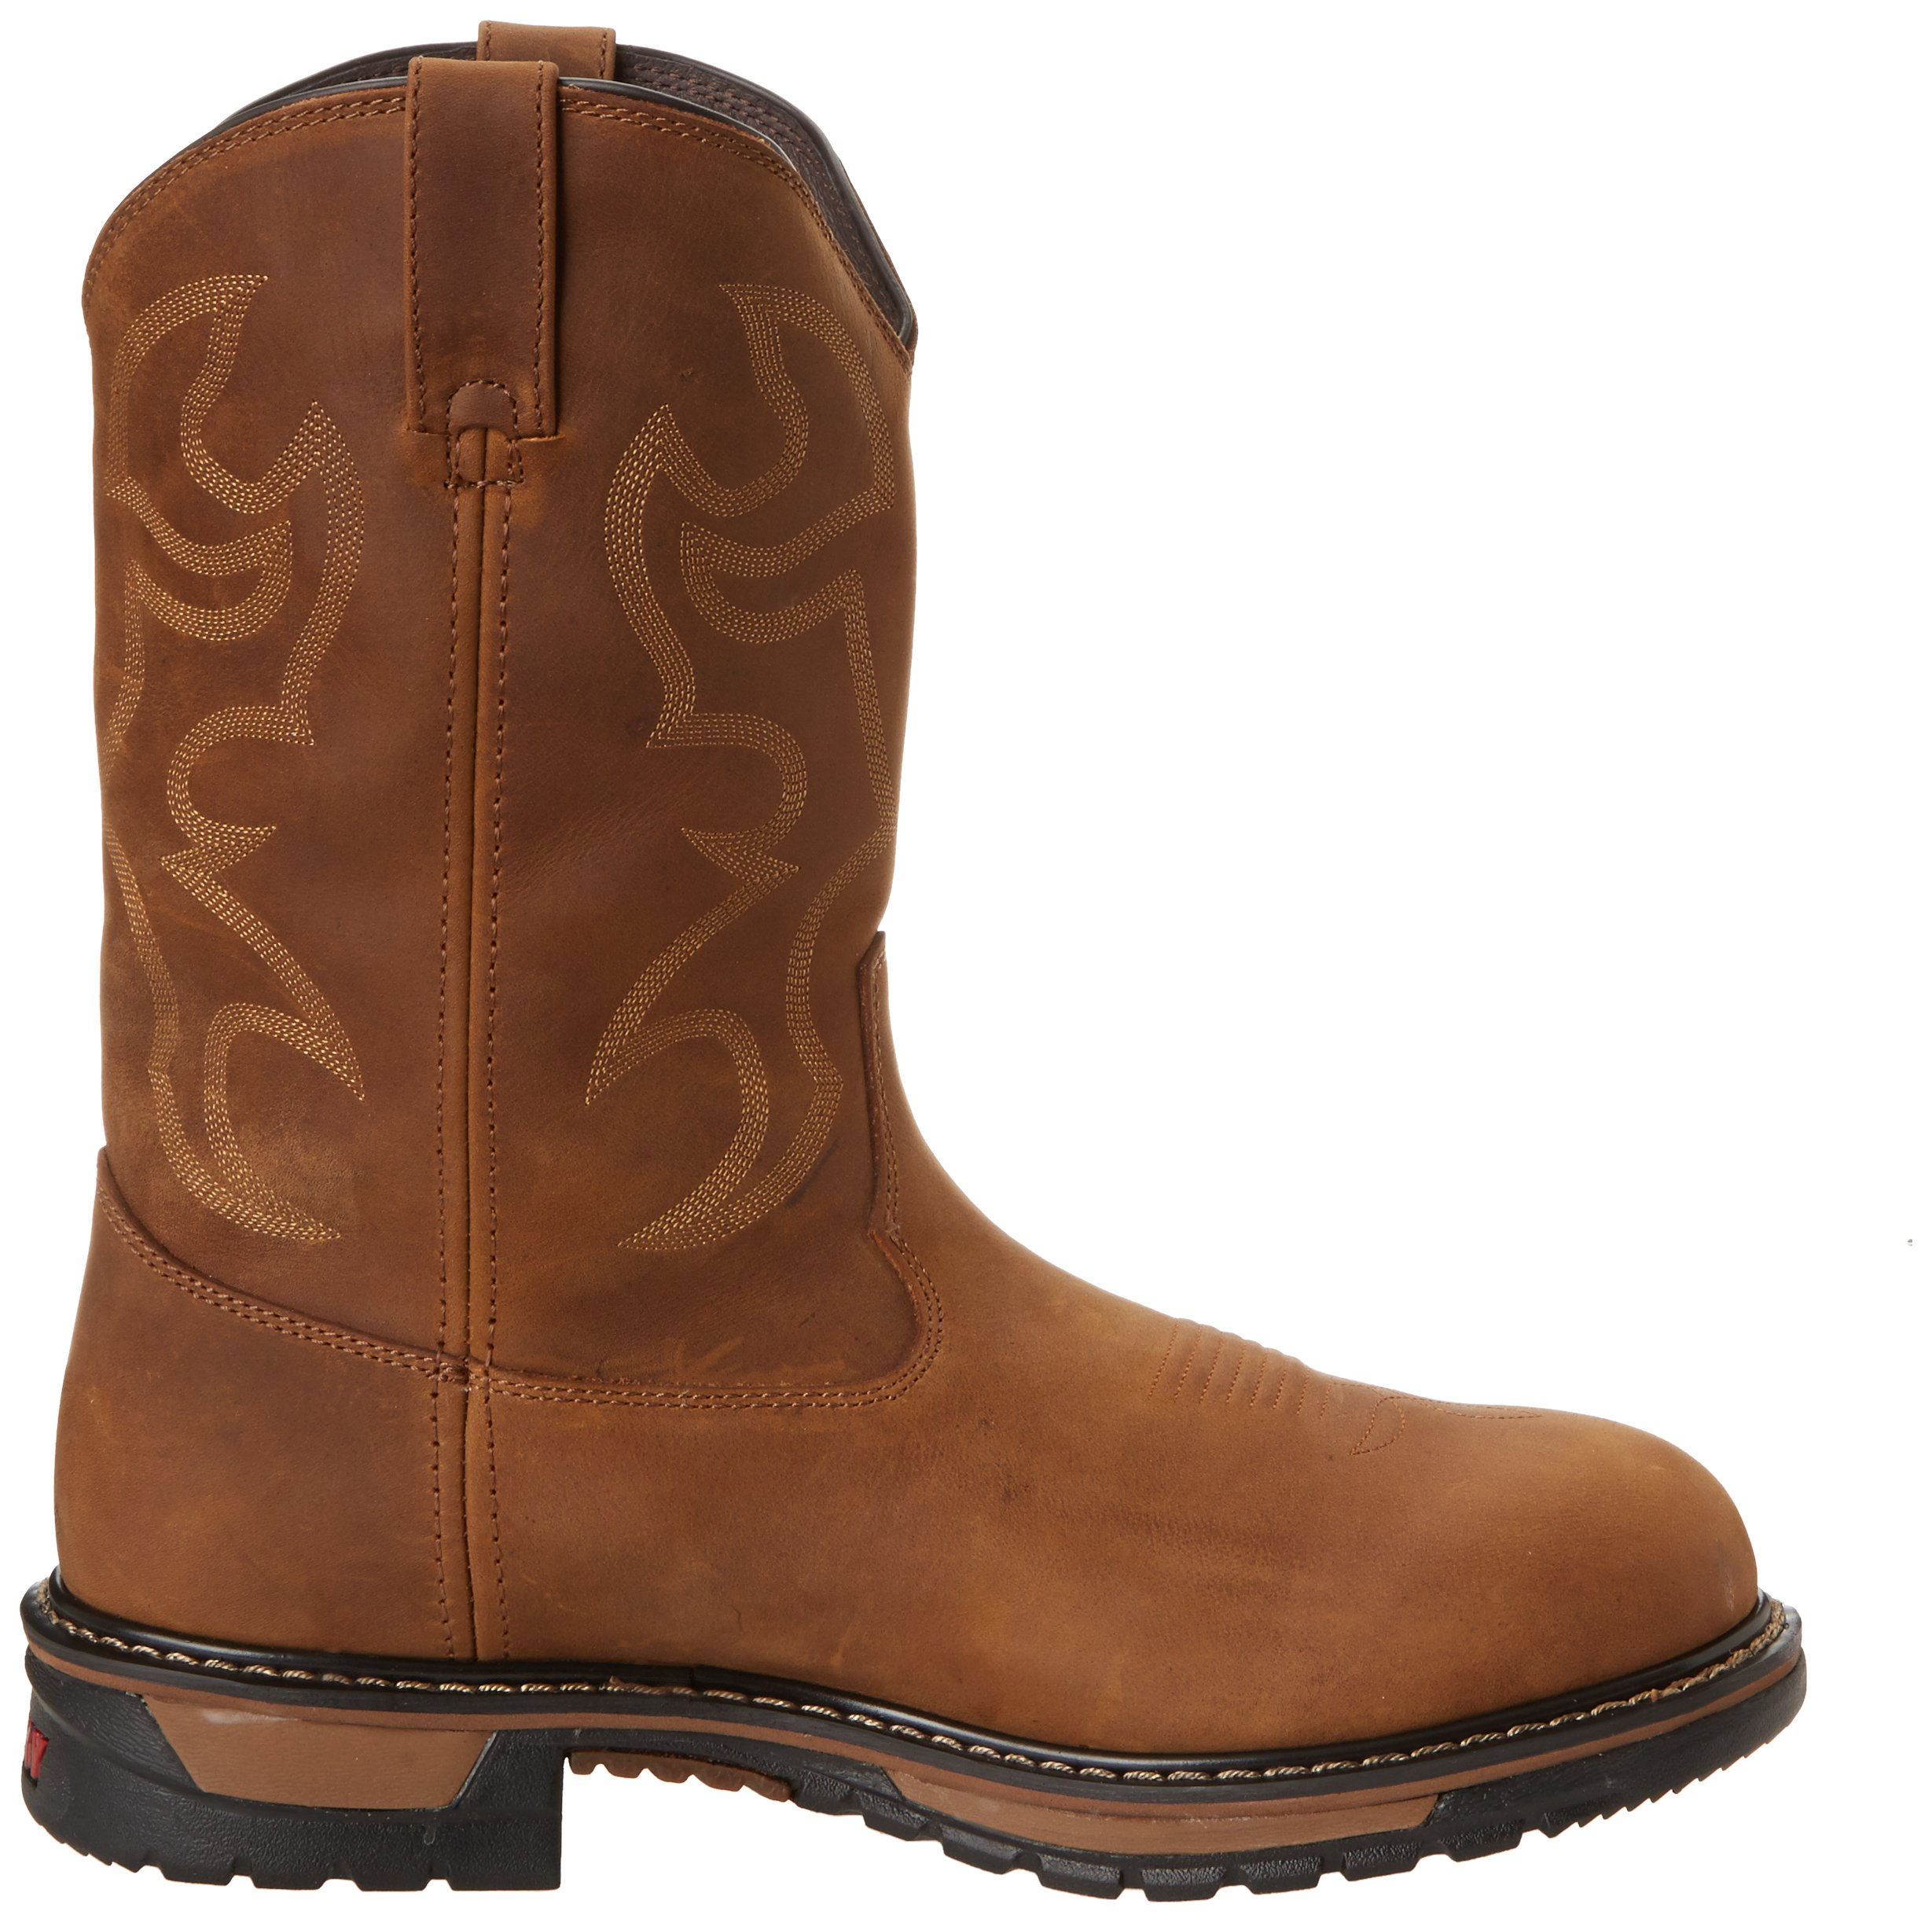 Rocky Men's FQ0002733 Boot, aztec crazy horse, 11 M US by Rocky (Image #6)